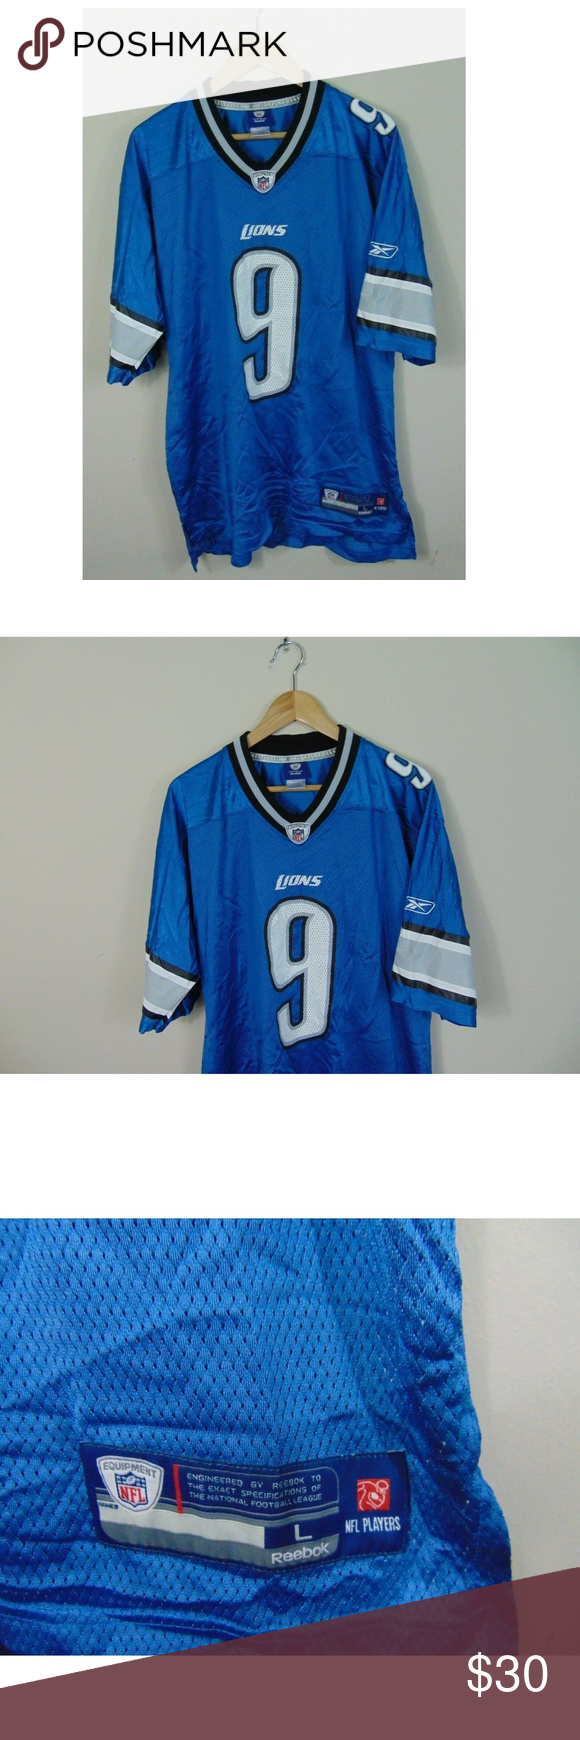 Reebok Men s L NFL On Field Jersey Detroit Lions Reebok Men s L NFL On Field  Jersey 0b875fcdc